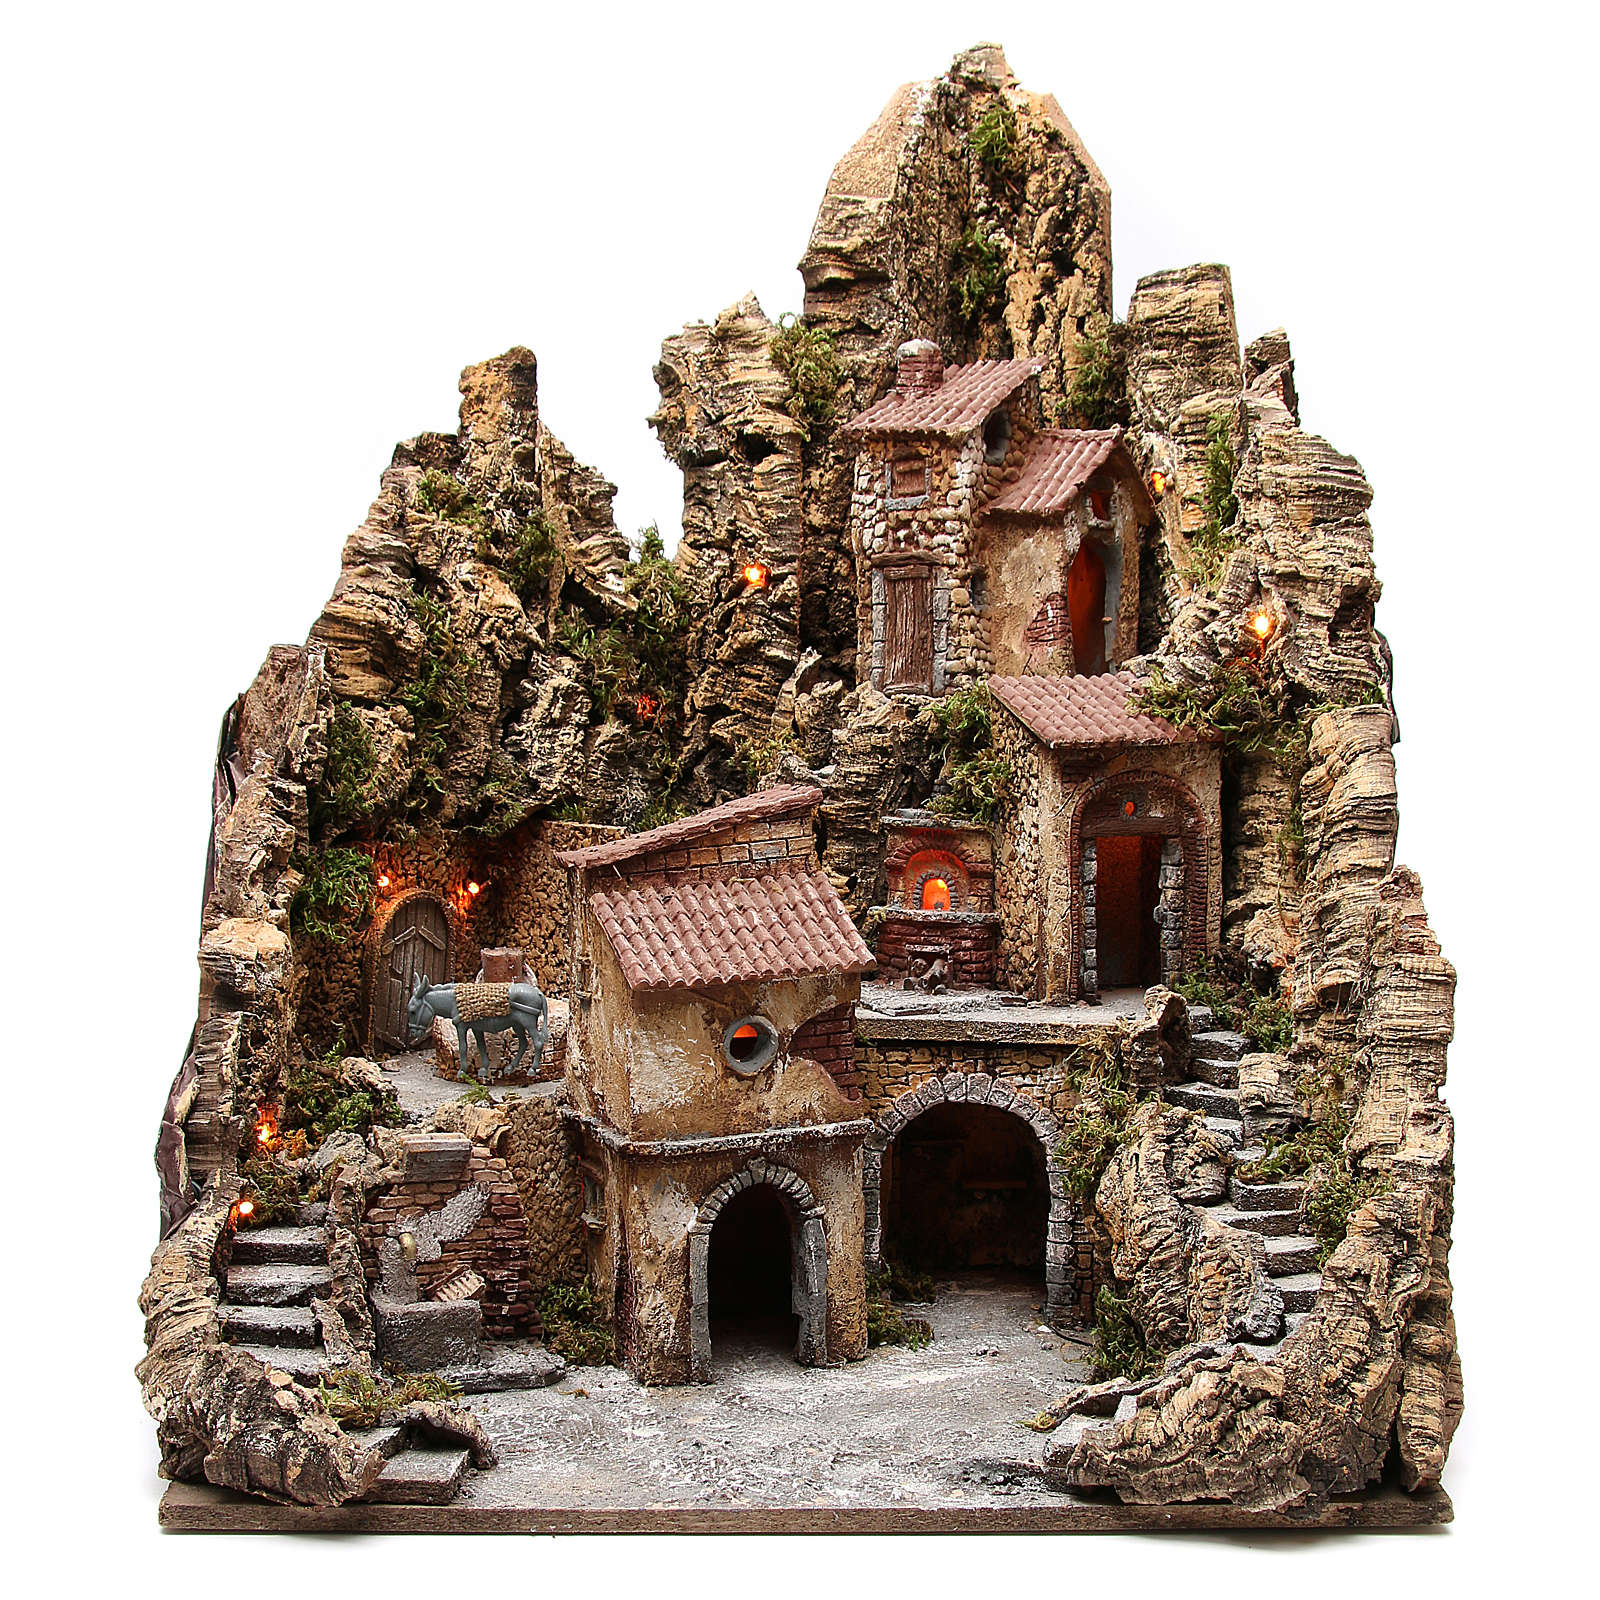 Illuminated village with stream, oven and stable, 80x62x58cm 4